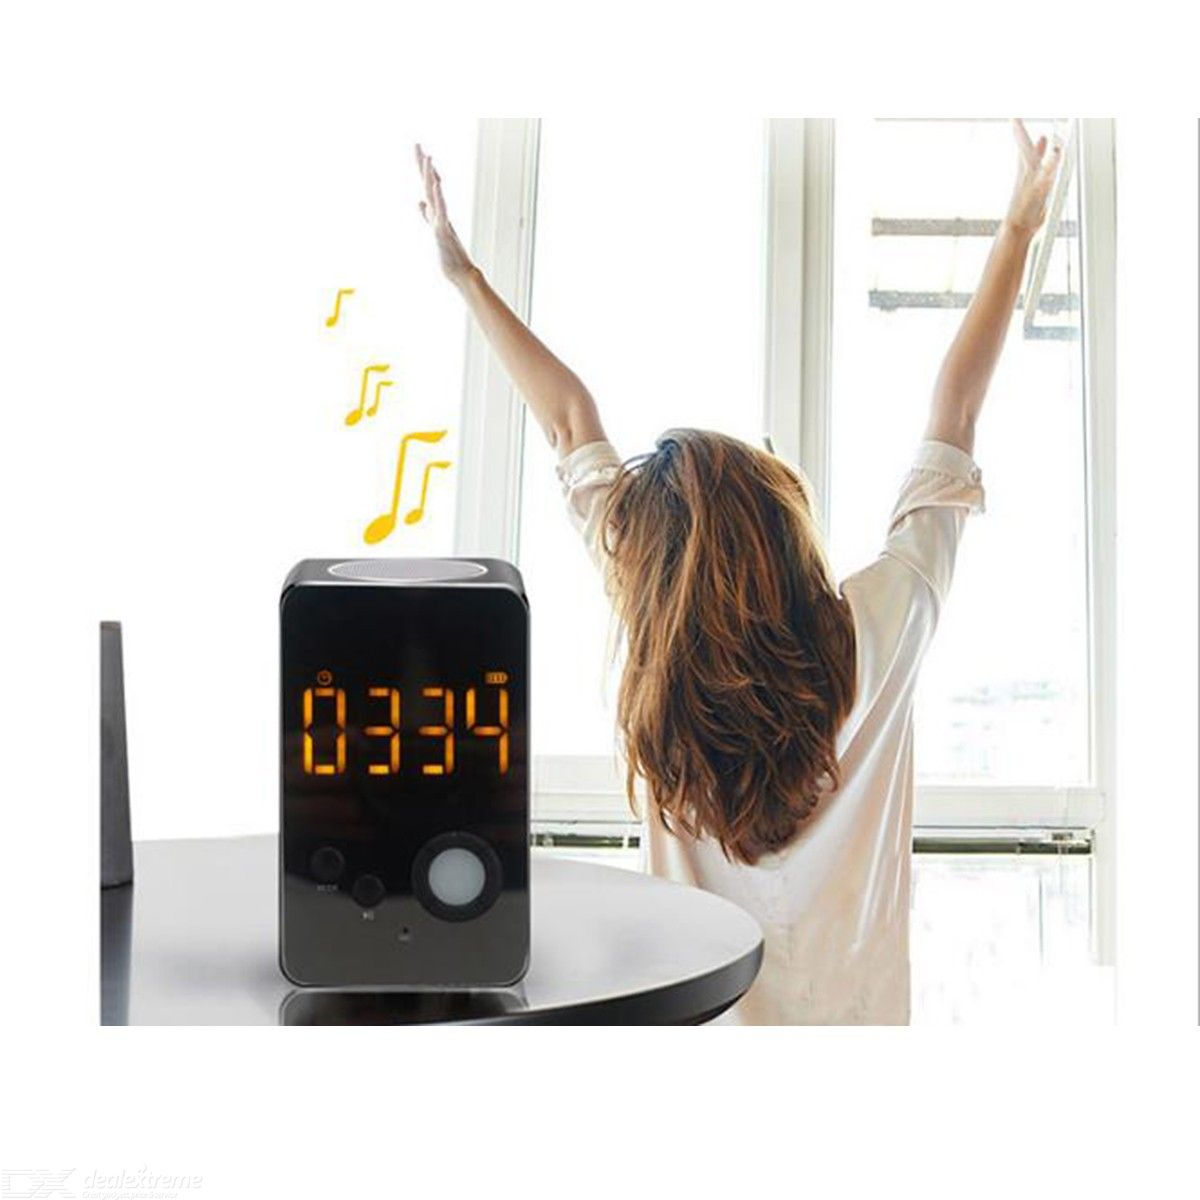 LED Alarm Clock Bluetooth 5.0 Speakers Portable Wireless Mini HiFi Speaker Bedside Lamp Night Light